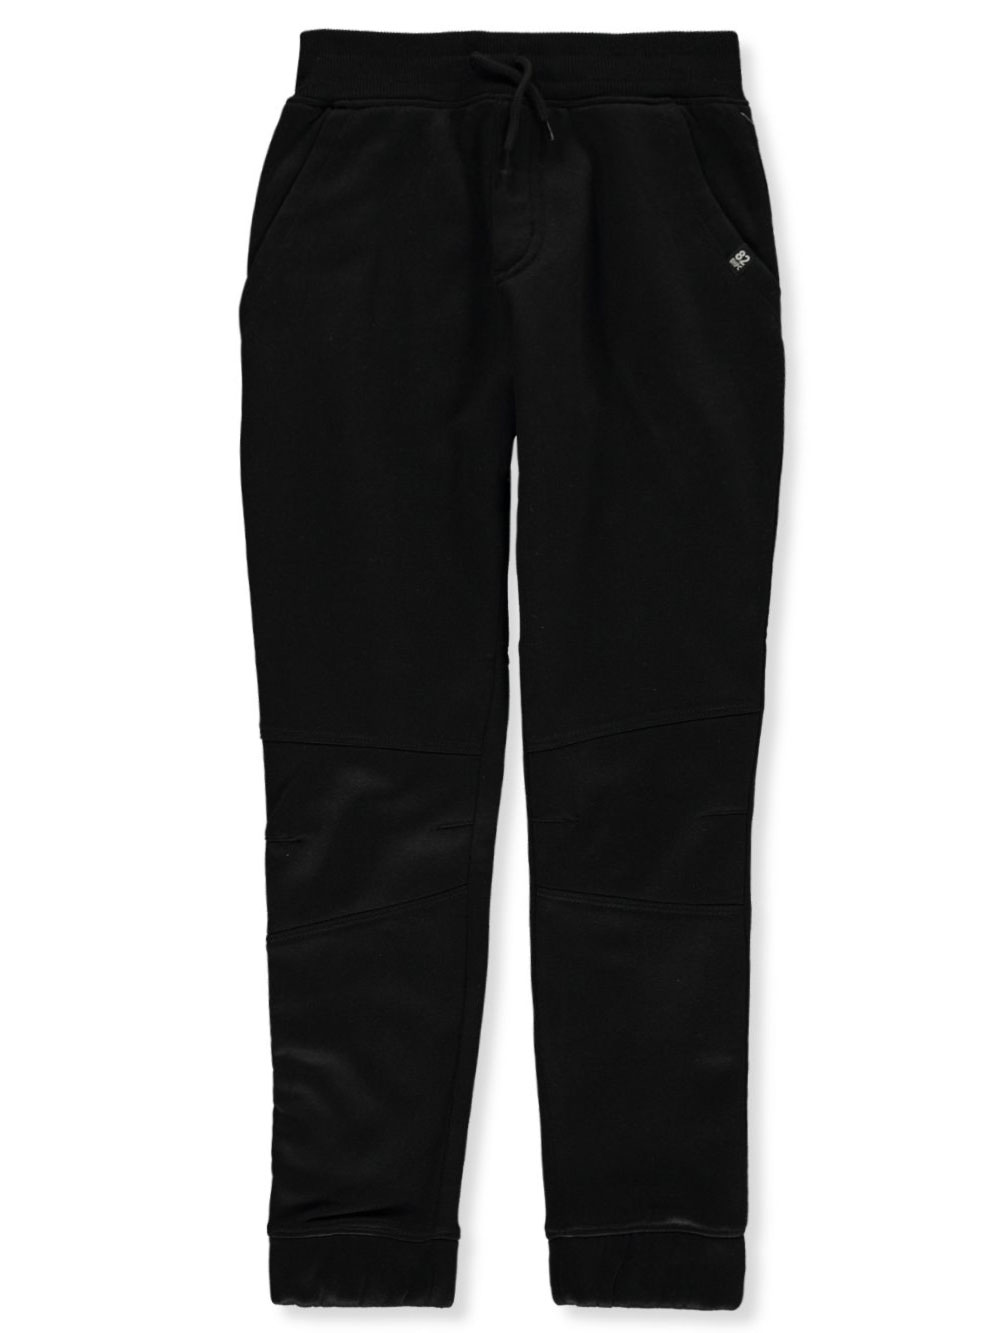 Beverly Hills Polo Club Sweatpants